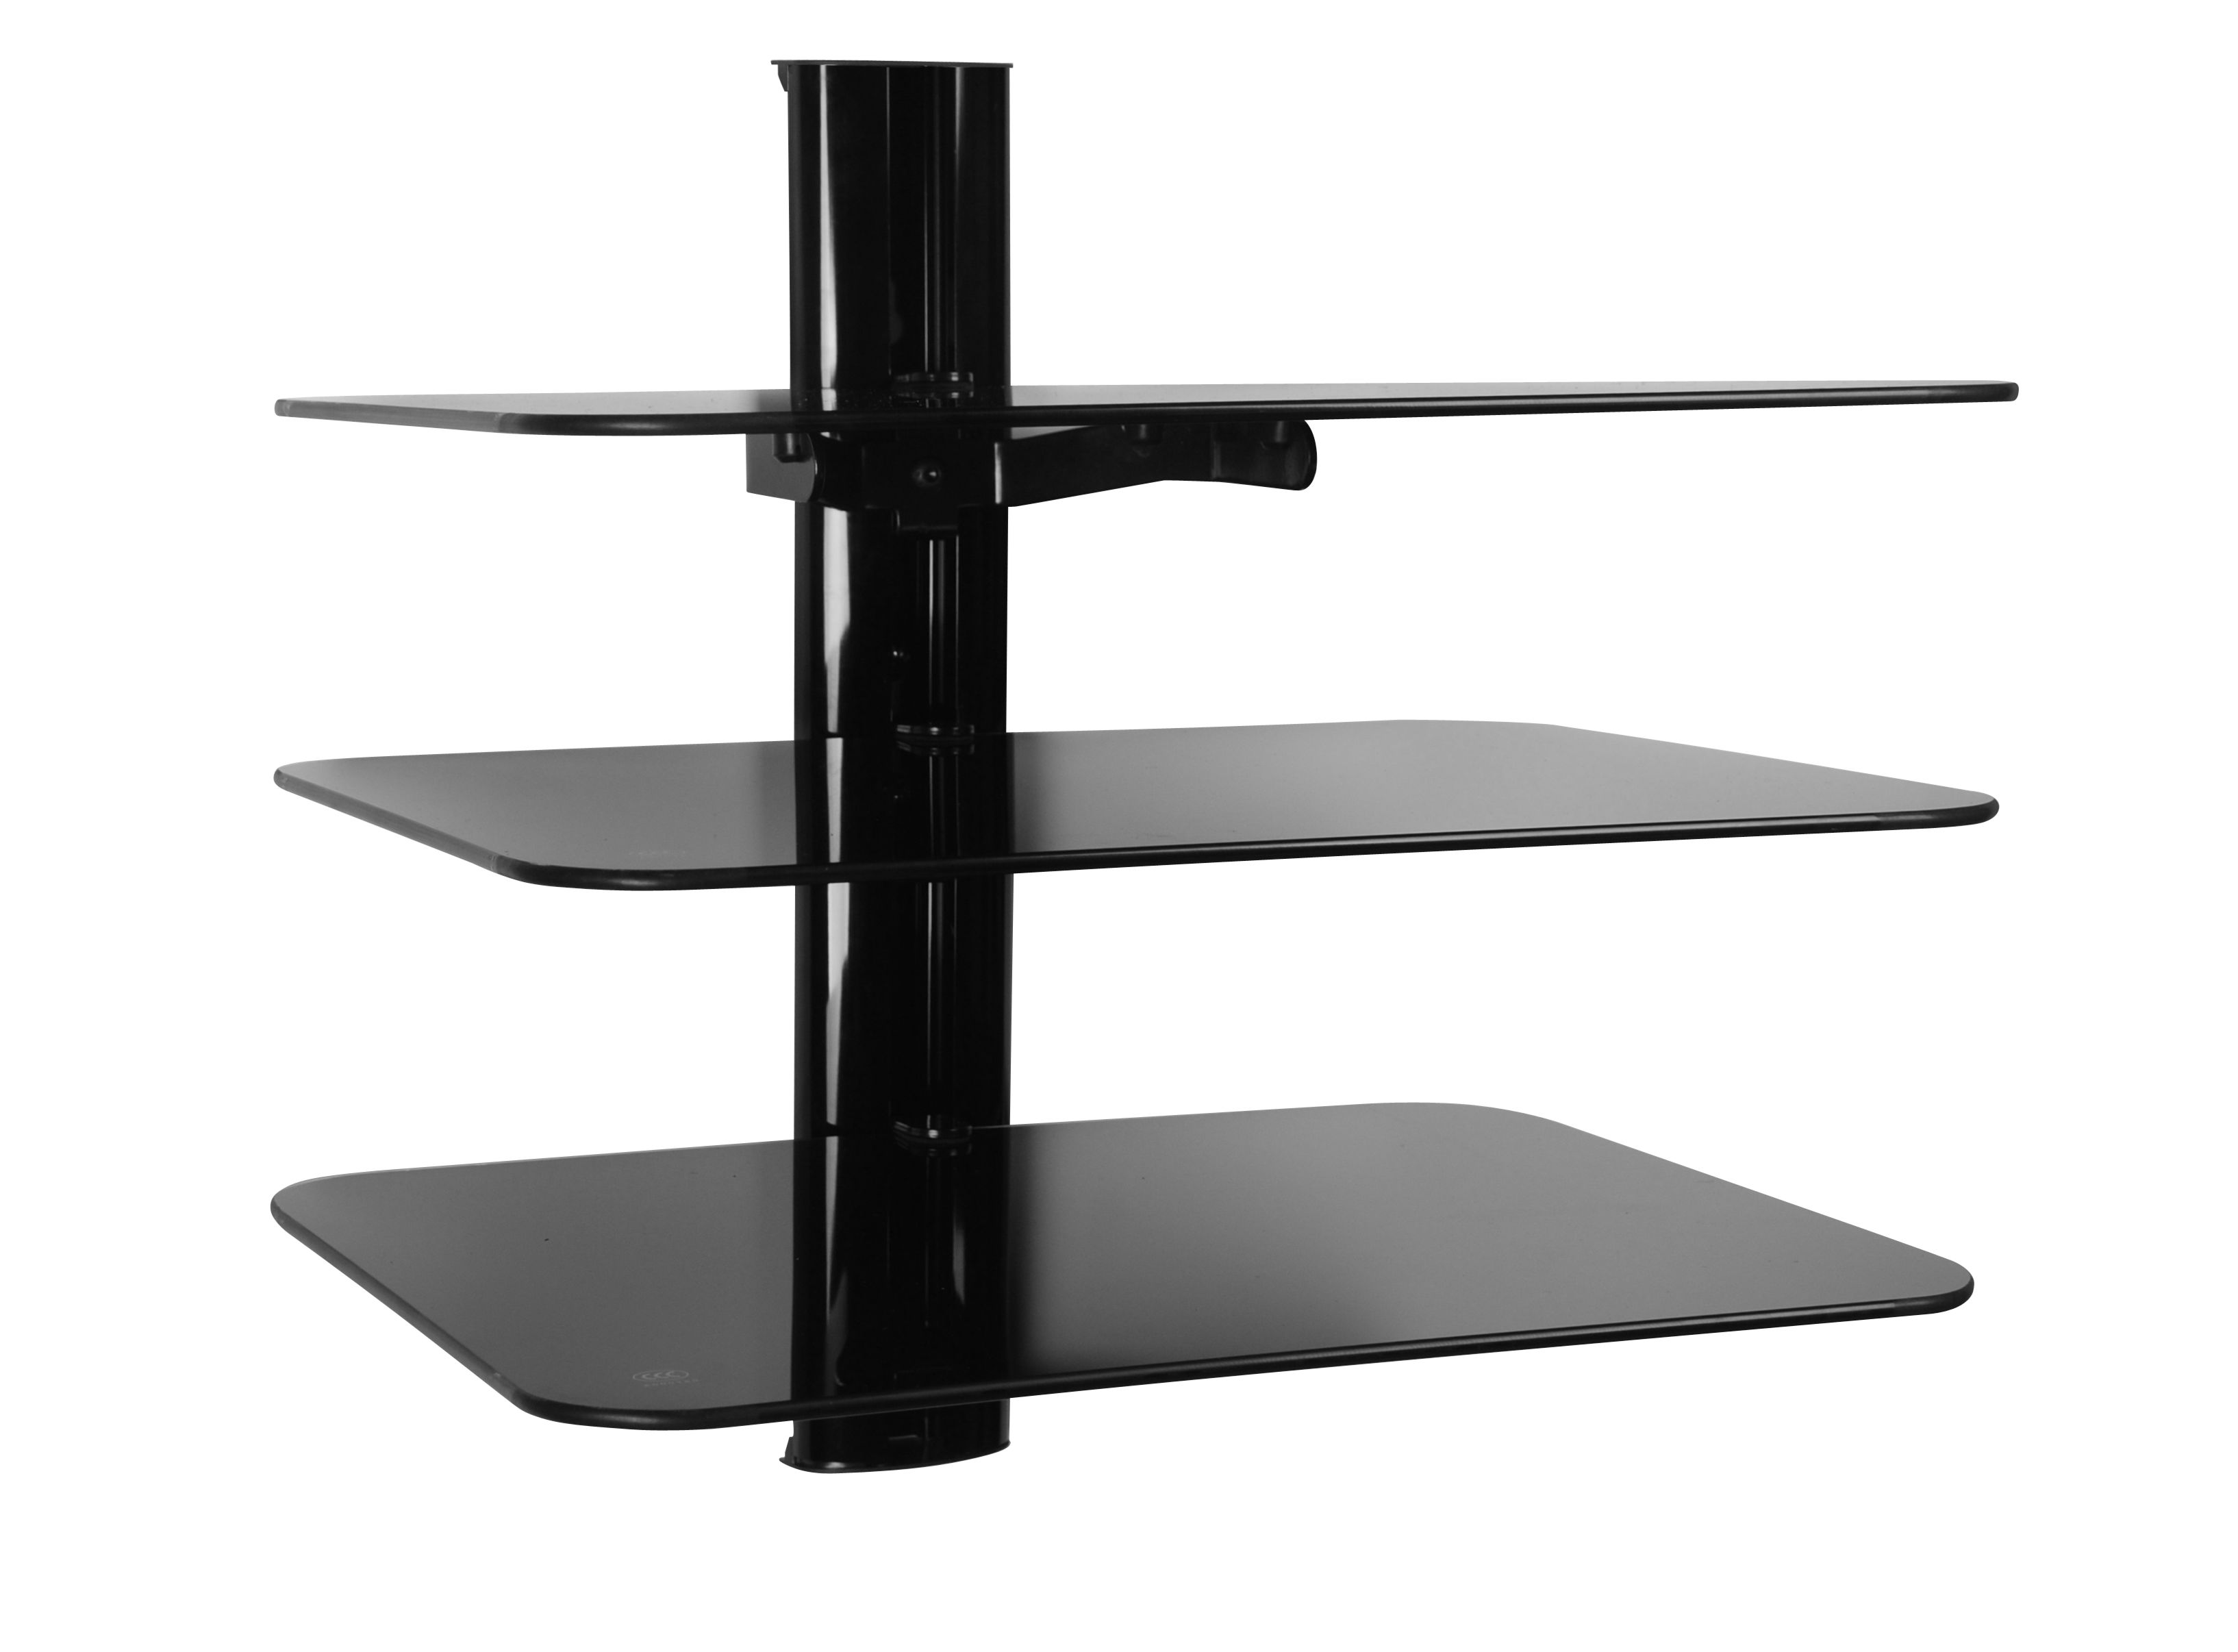 triple glass shelving system dsc floating shelf wall mount black mounted shelves scrap wood kitchen worktop oak unit and bookshelf simple shoe rack can use underlay with vinyl